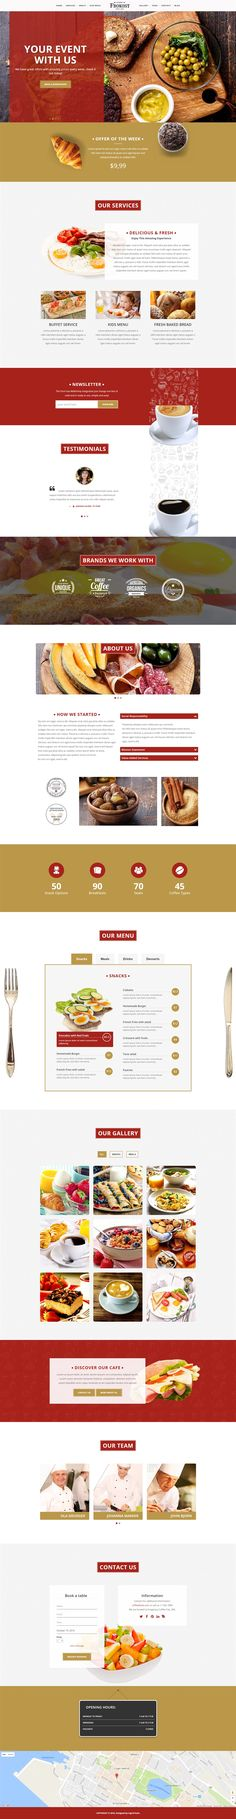 Frokost - One Page Restaurant Cafe WordPress Theme, Retail Food